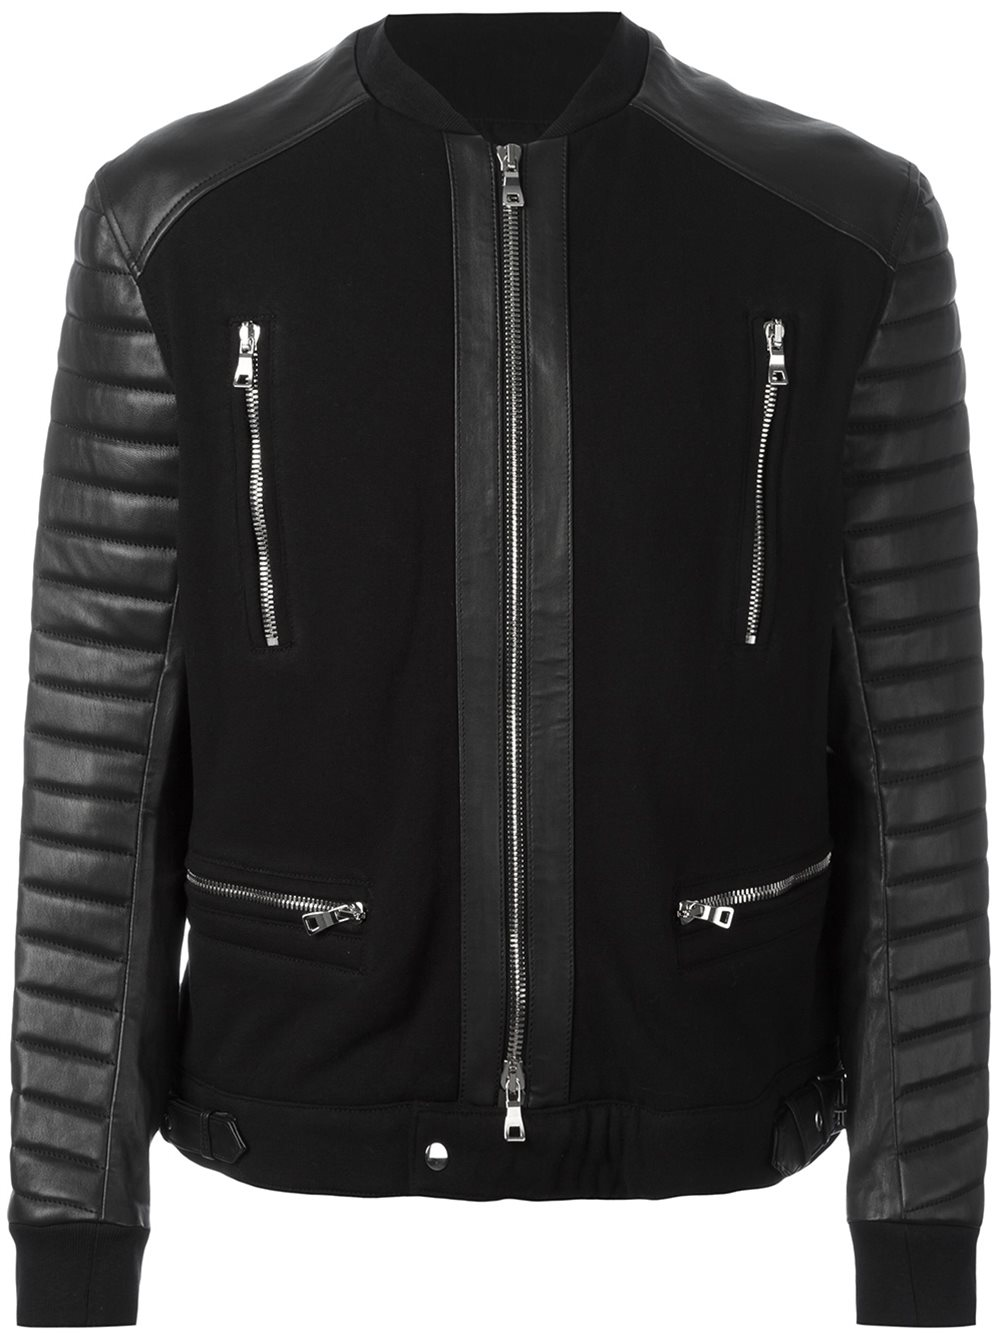 Balmain Outfit | Mens Balmain Leather Jacket | Balmain Leather Jacket